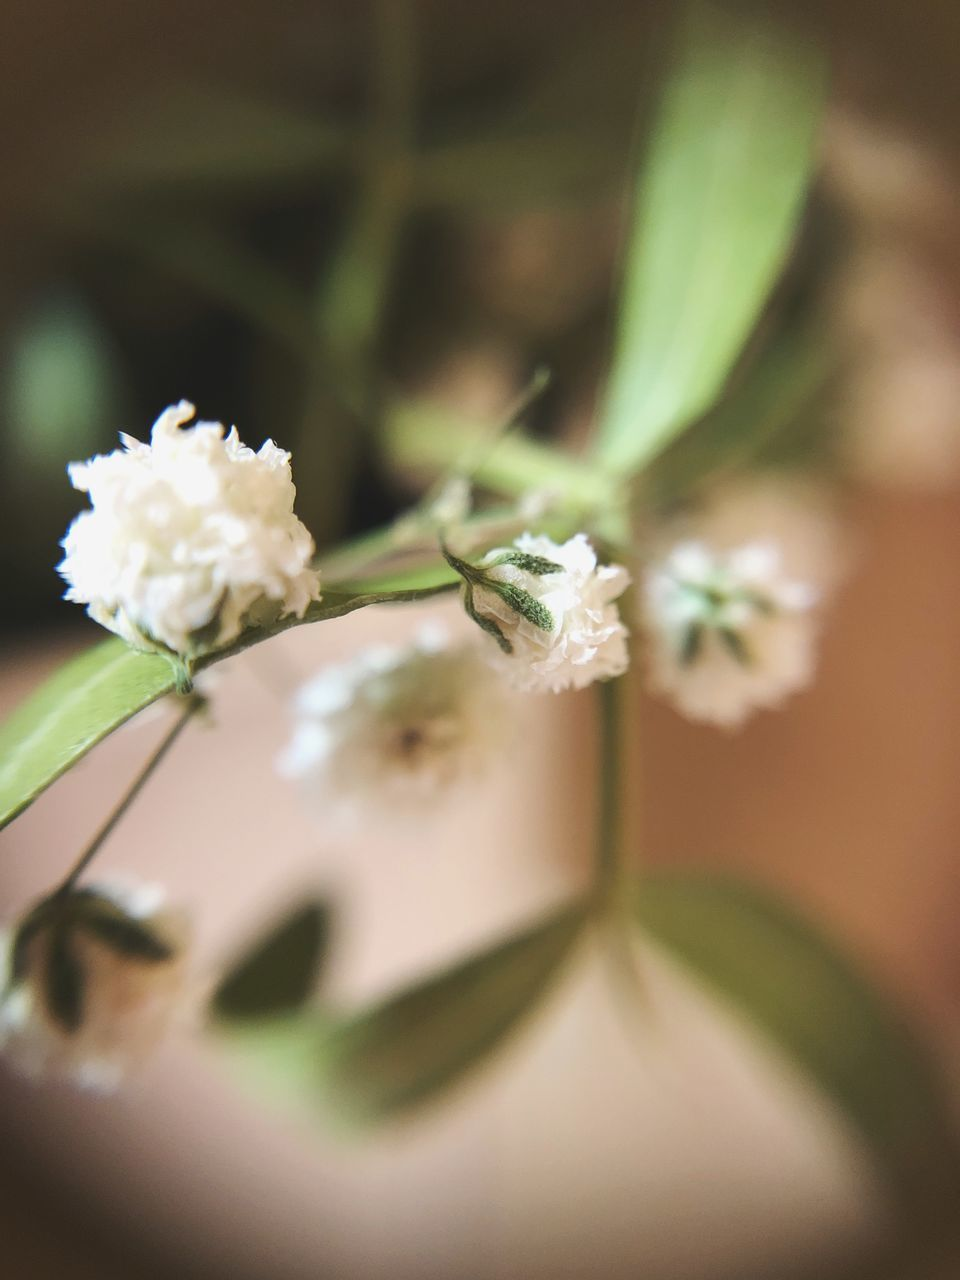 flowering plant, flower, plant, selective focus, beauty in nature, freshness, close-up, growth, fragility, vulnerability, leaf, plant part, nature, no people, white color, day, outdoors, green color, plant stem, petal, flower head